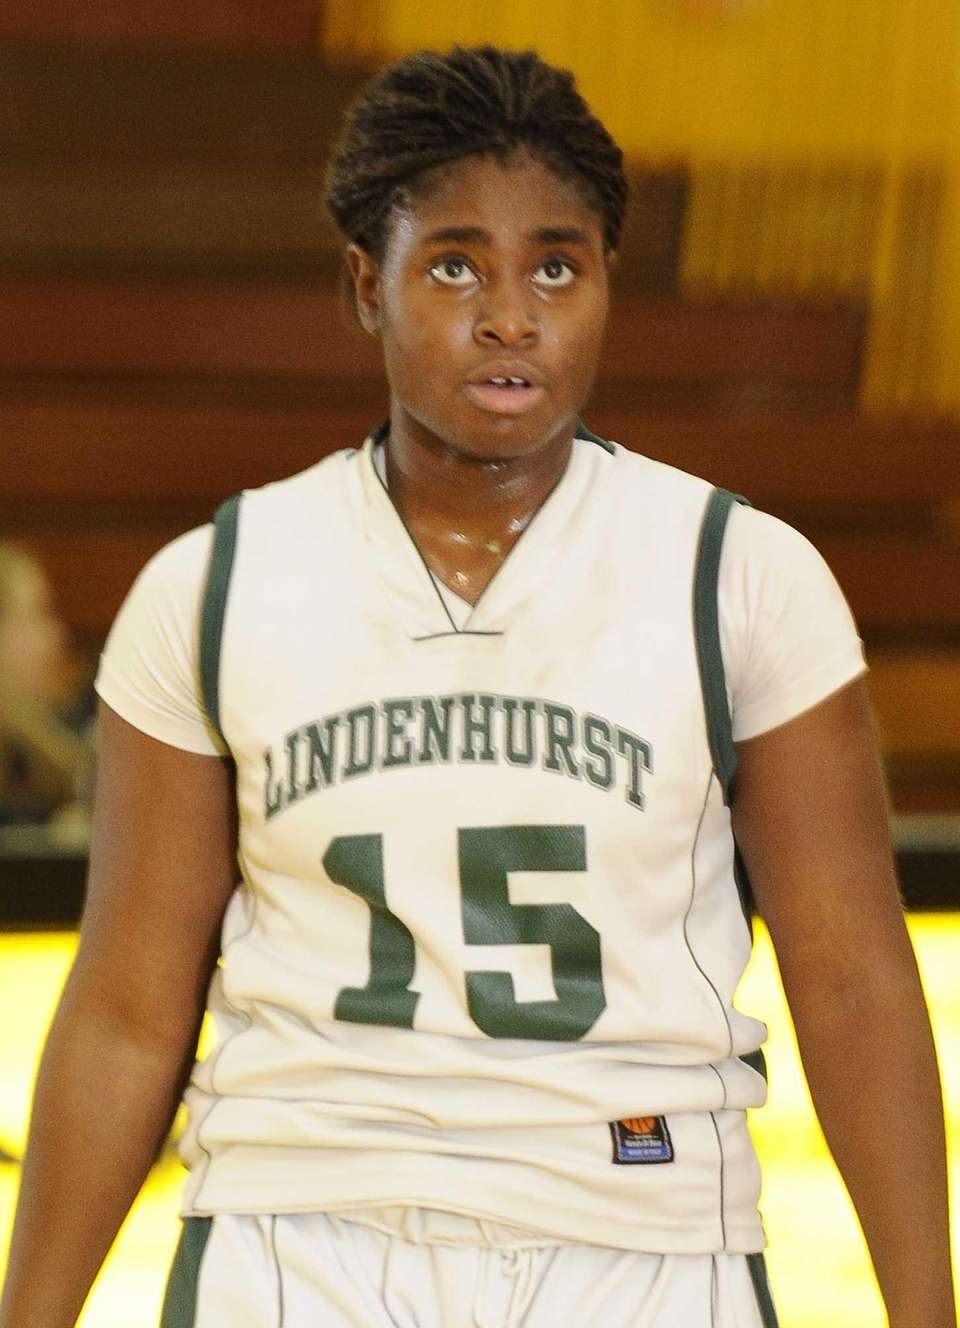 Lindenhurst's Valerie Oyakhilome looks on during a game